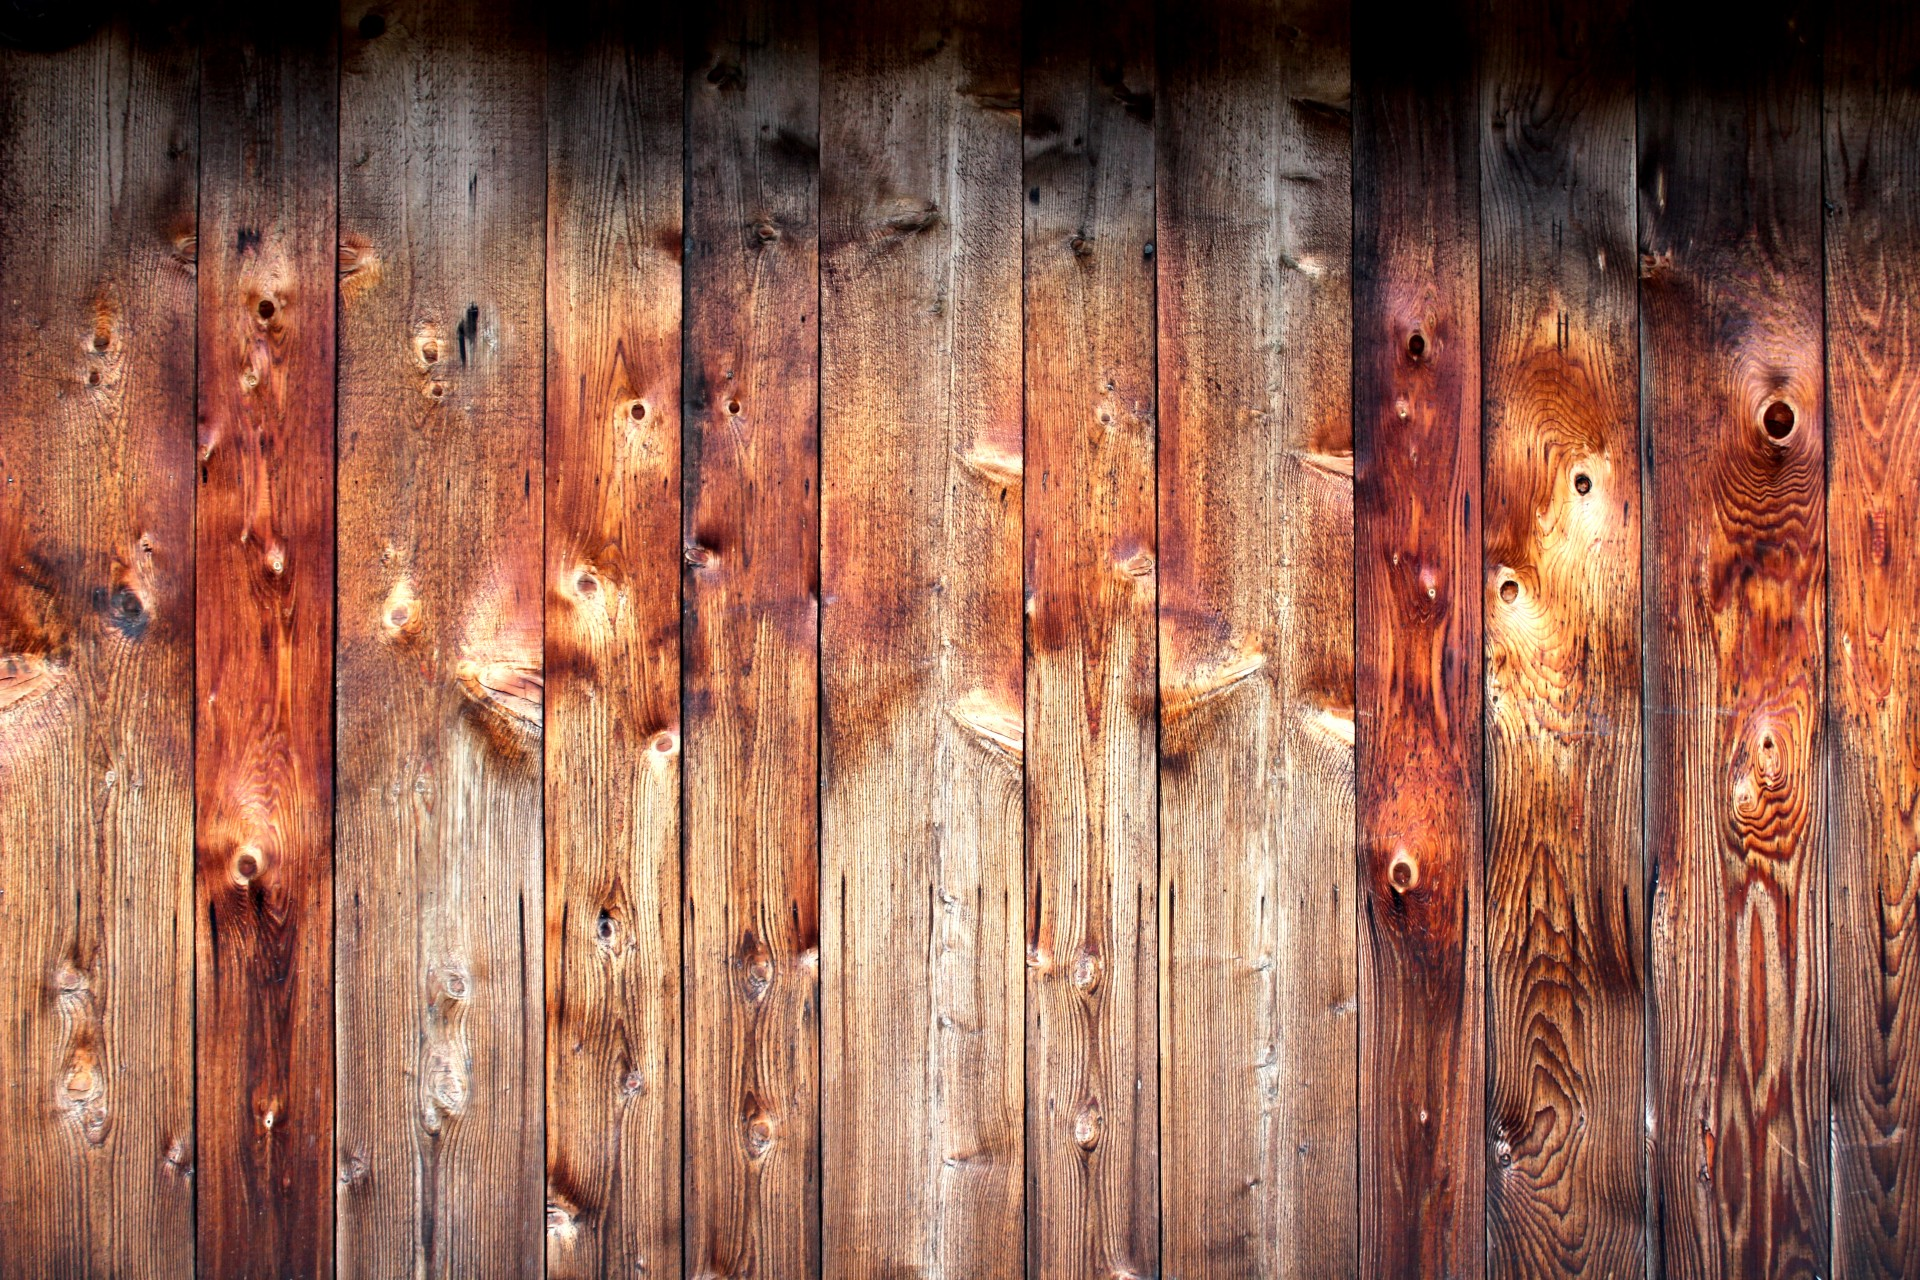 Related Pictures wood background 1920x1280